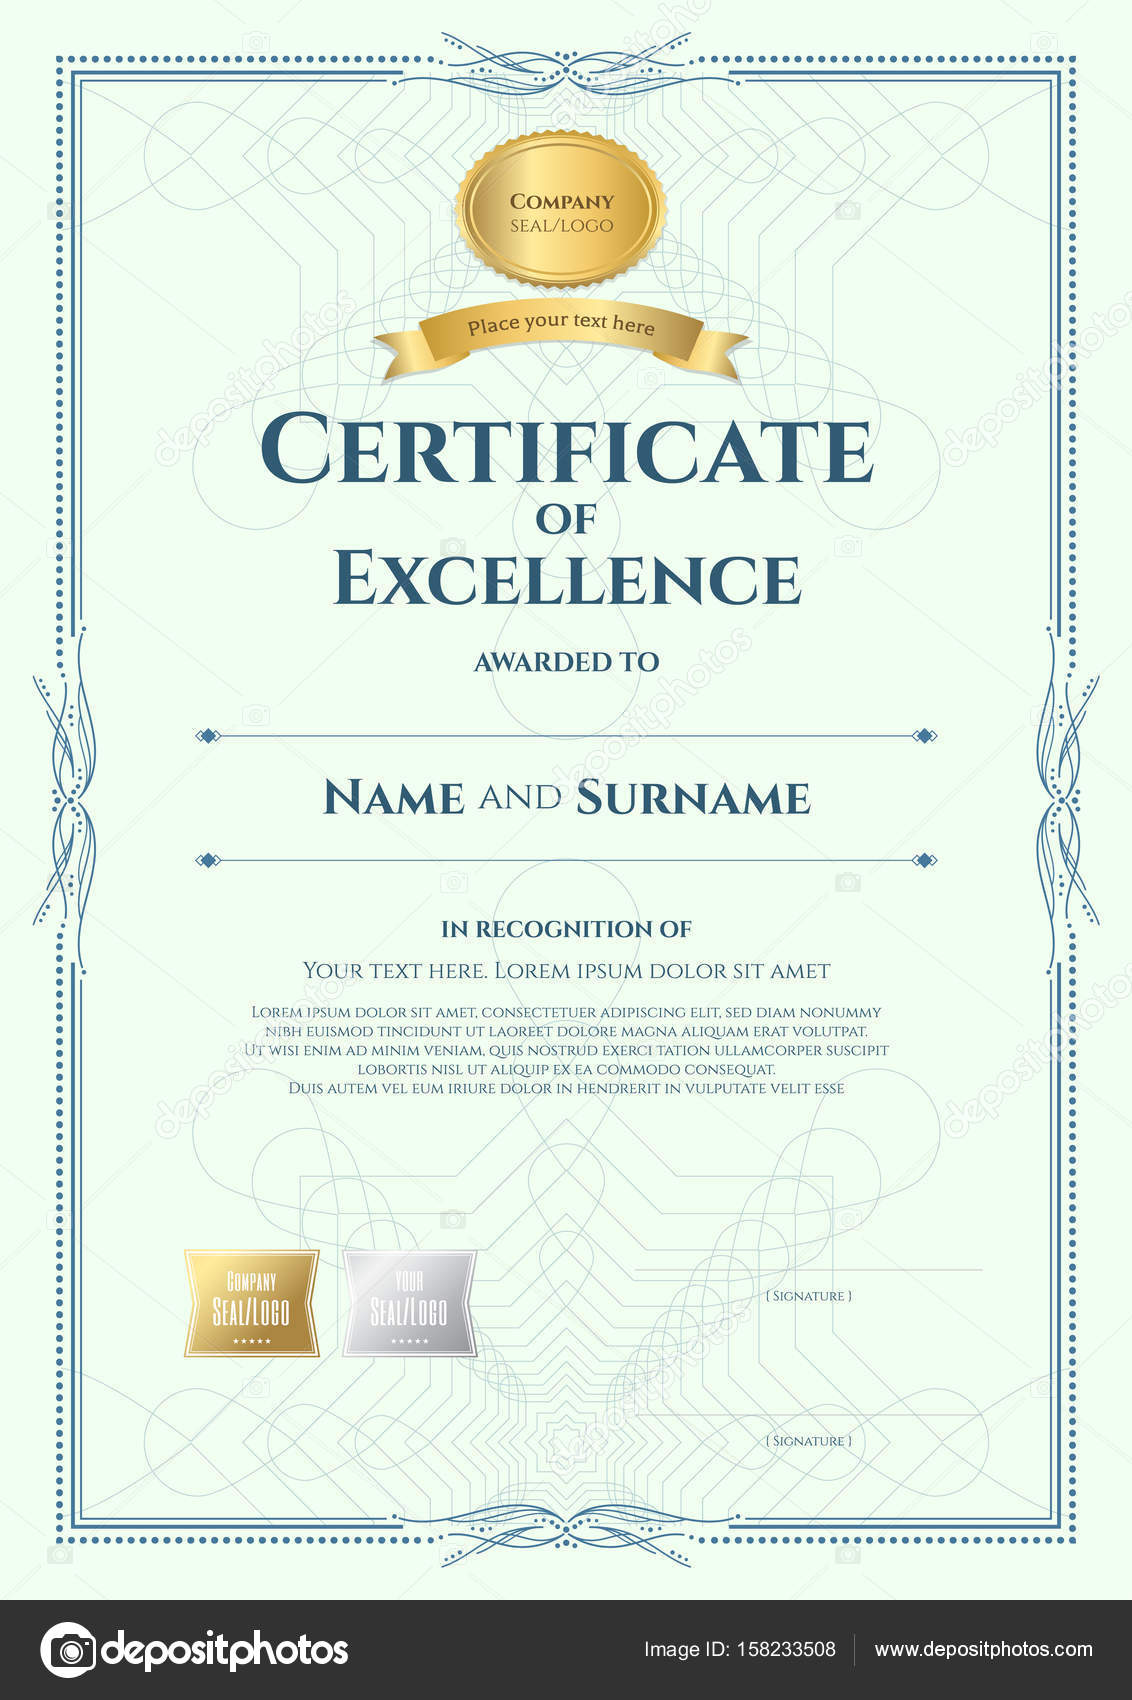 Portrait Certificate Of Excellence Template With Award Ribbon On U2014 Stock  Vector  Certificate Of Excellence Template